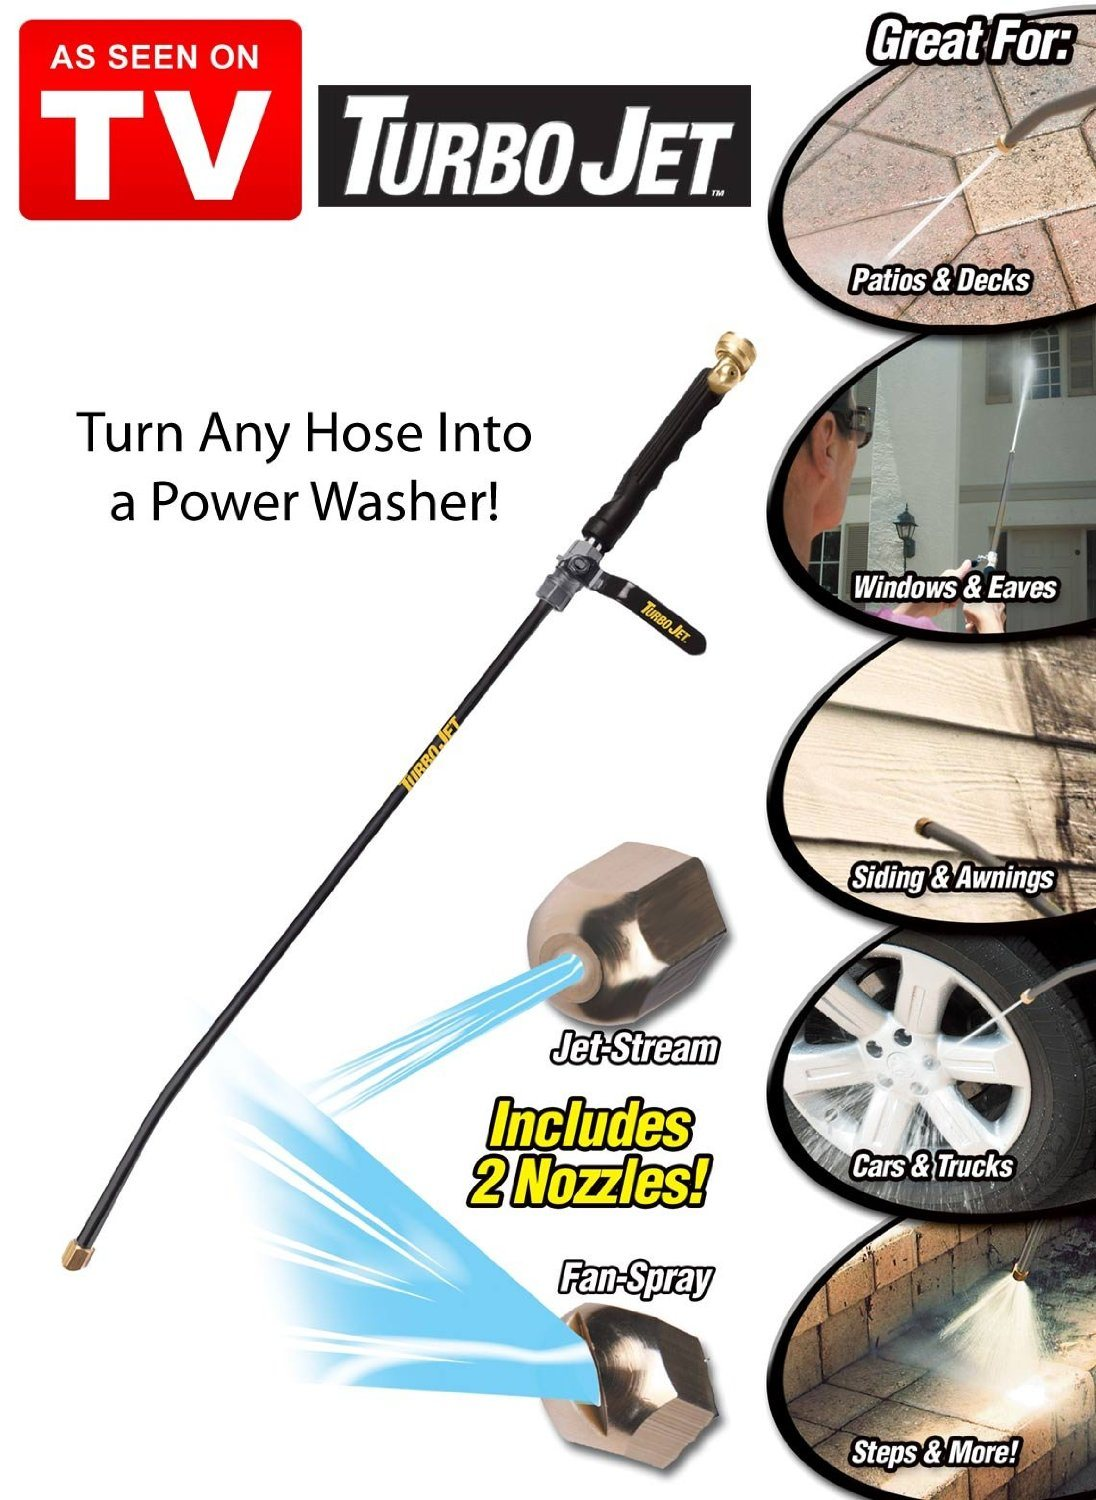 X Hose PRO Water Jet Attaches to Any Standard Hose!